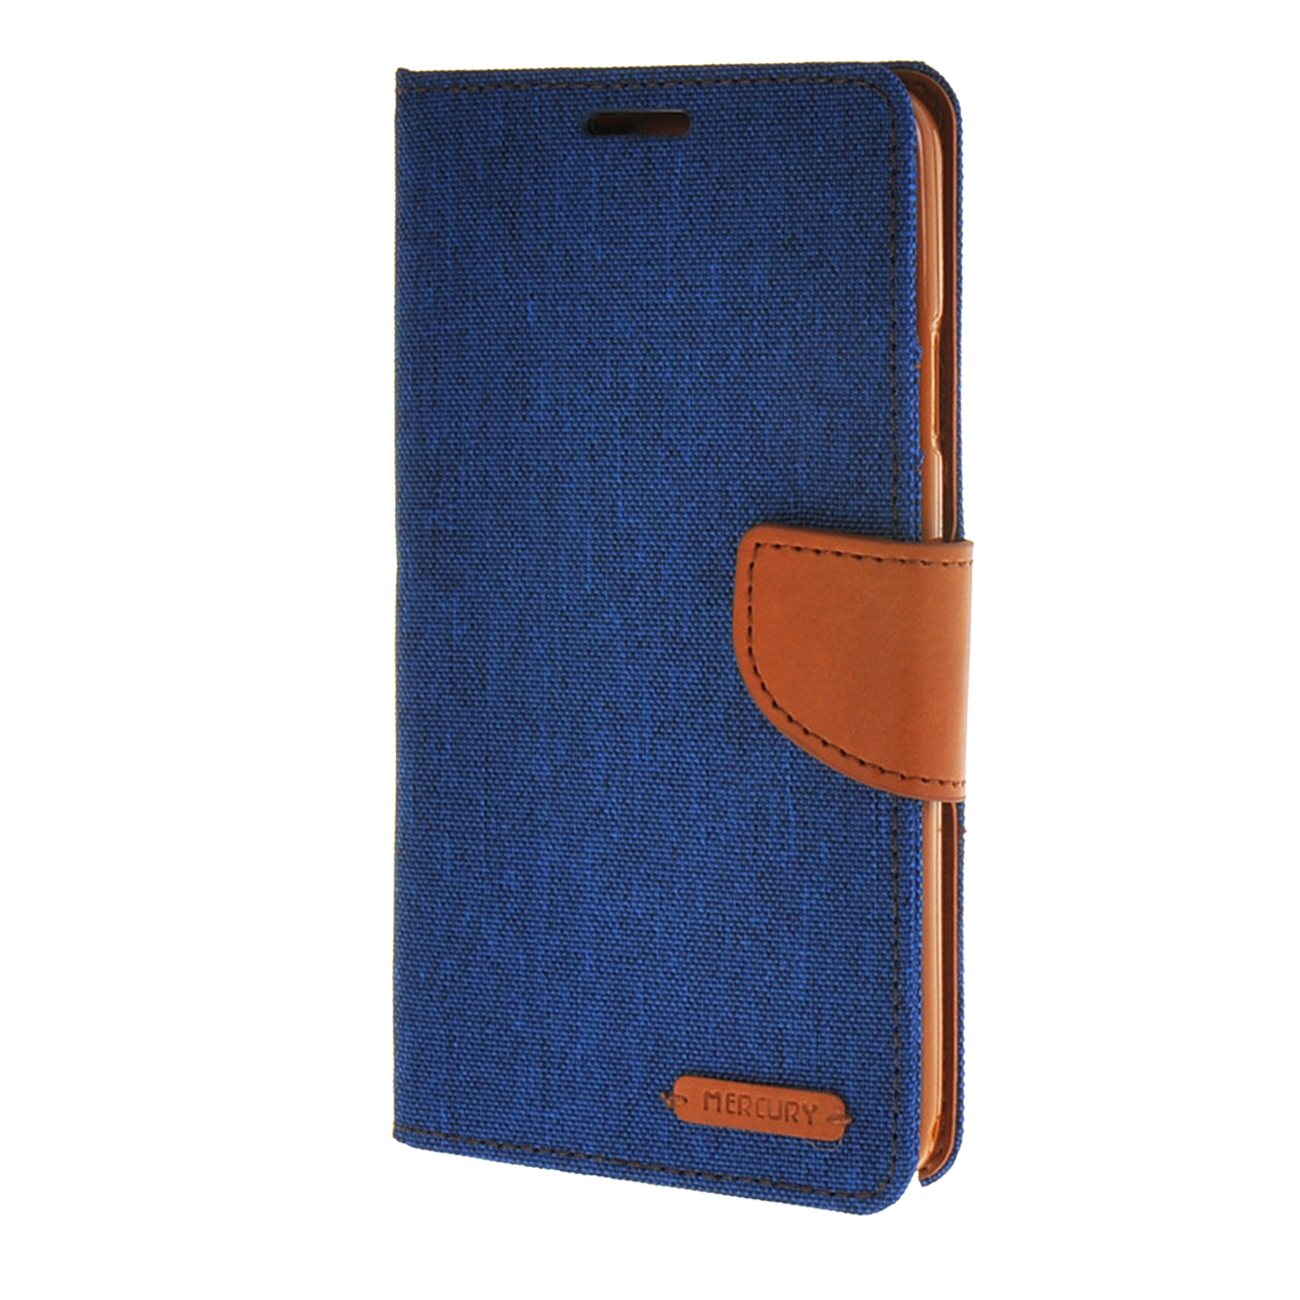 MOONCASE mooncase samsung galaxy note 5 чехол